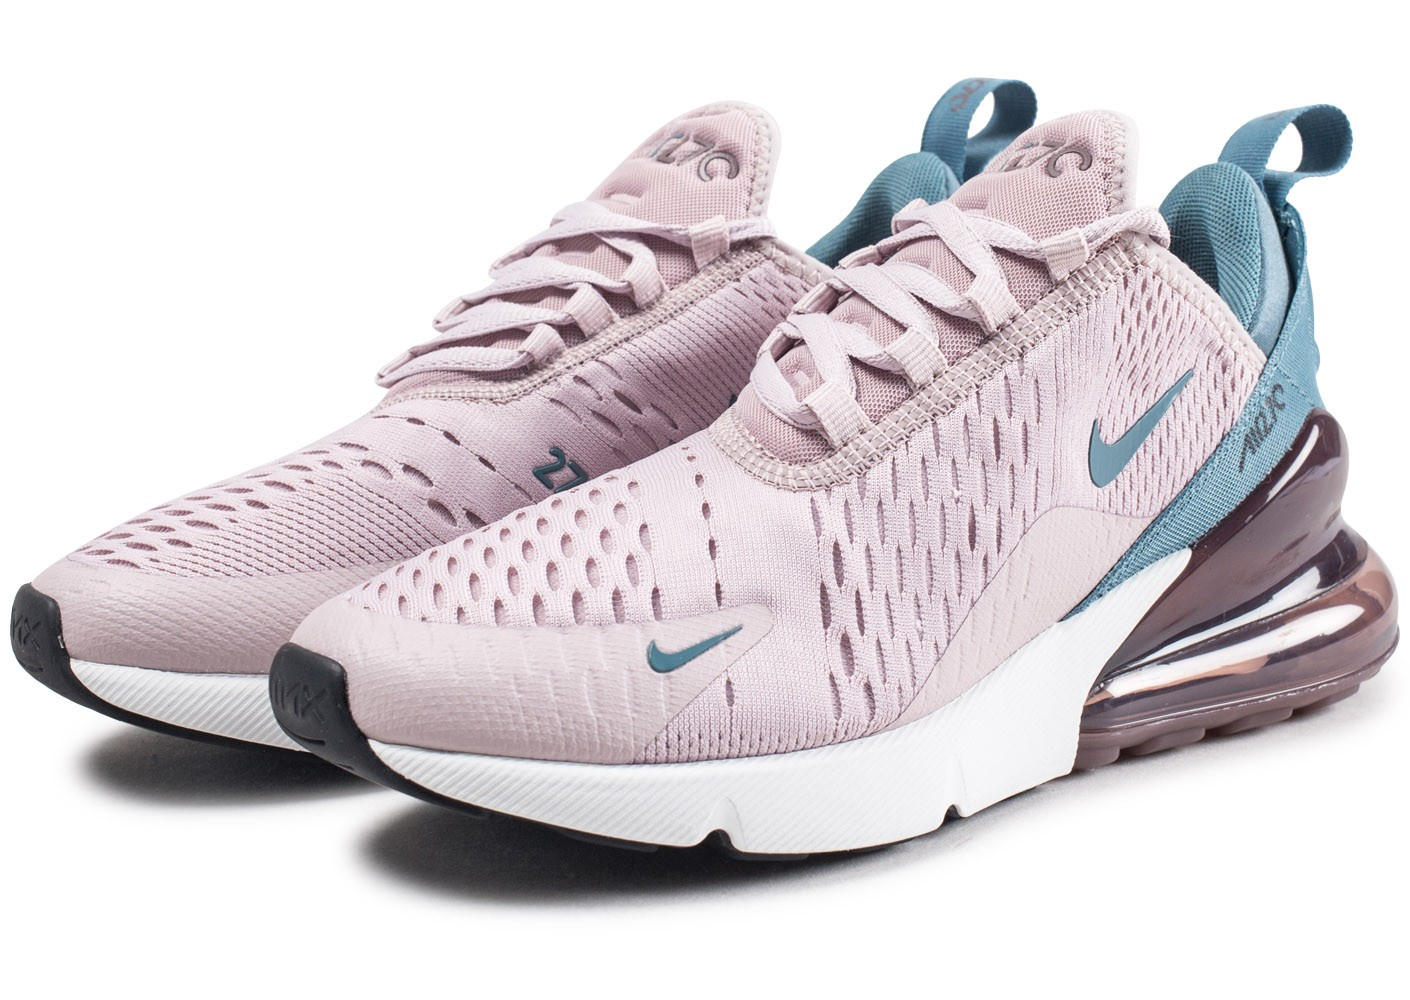 Nike Air Max 270 rose et bleue femme - Chaussures Baskets ...